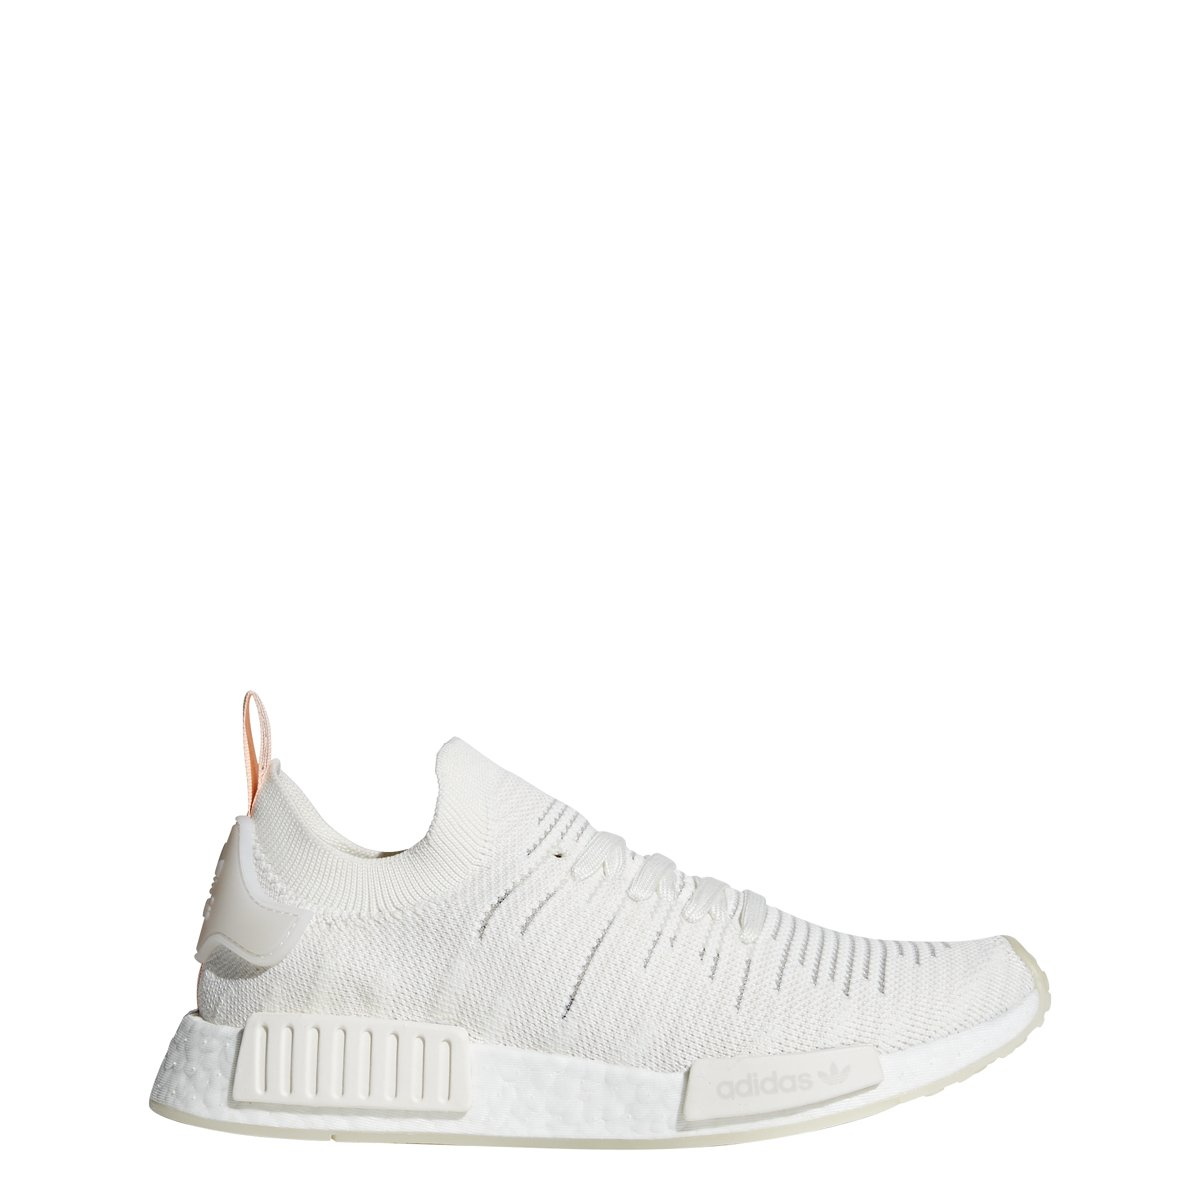 4ad9714449d47 Galleon - Adidas Originals Women s NMD R1 Cloud White Cloud White Clear  Orange 7.5 B US B (M)